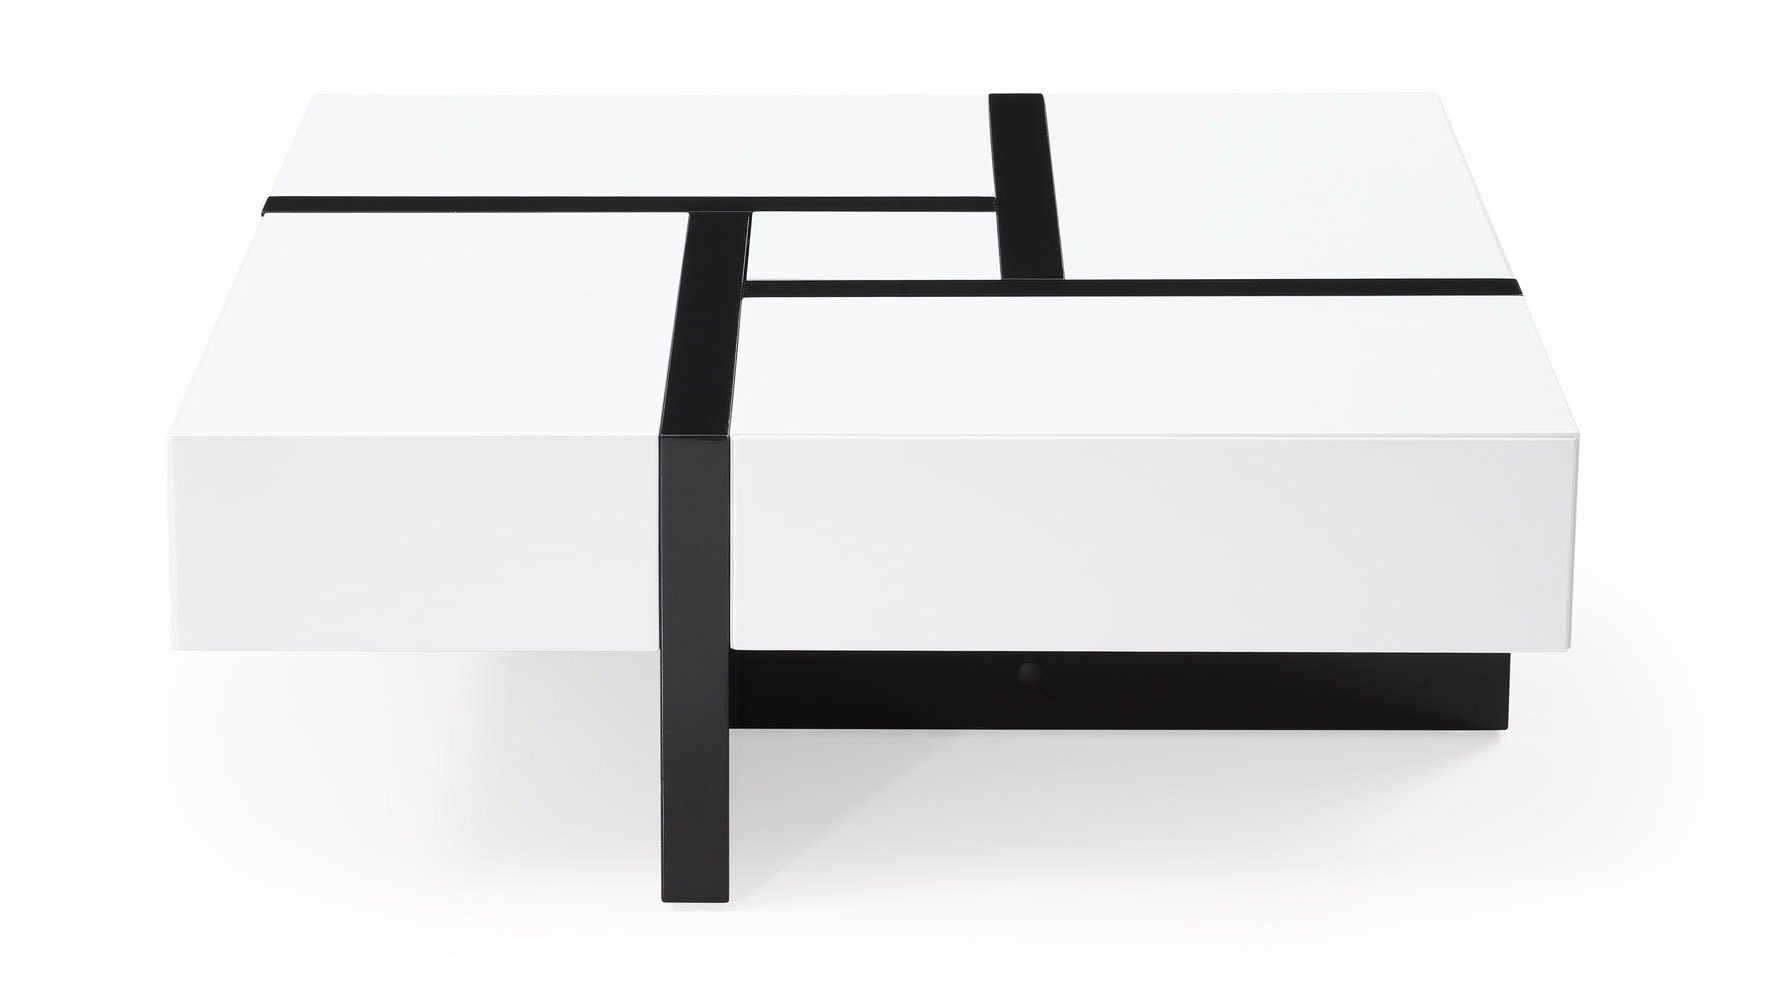 Mcintosh Square Coffee Table White And Black